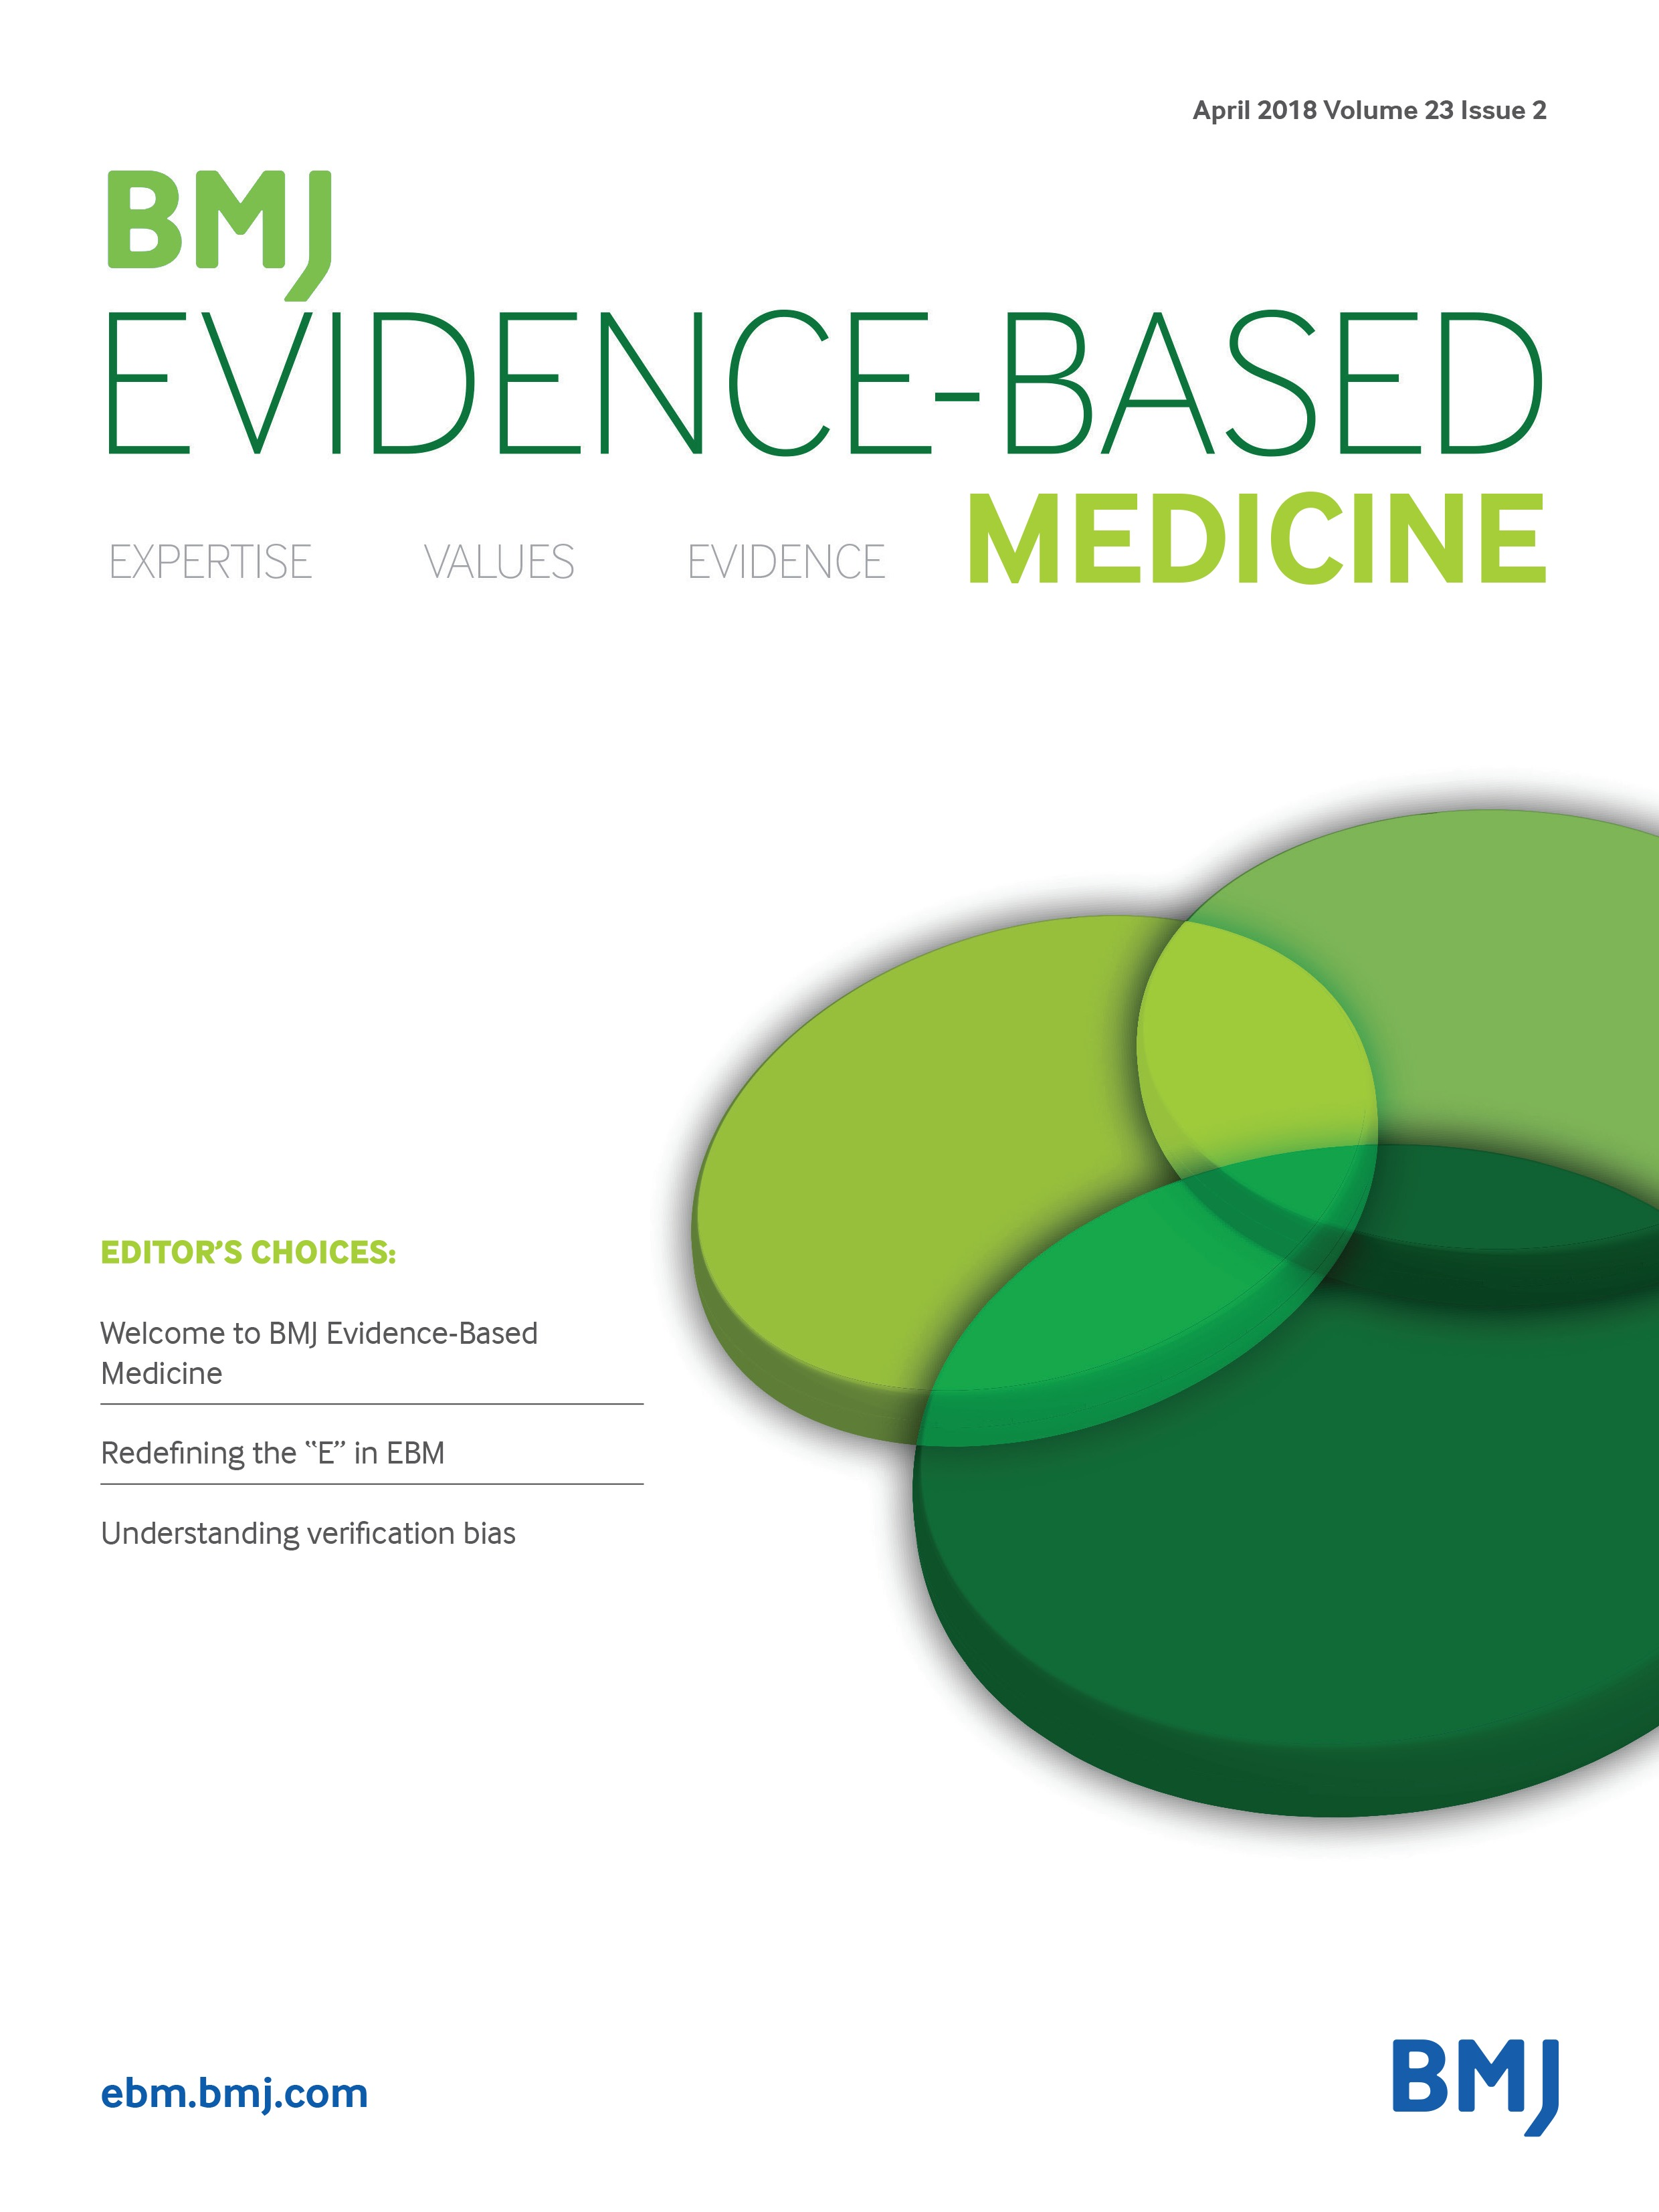 systematic review of case reports